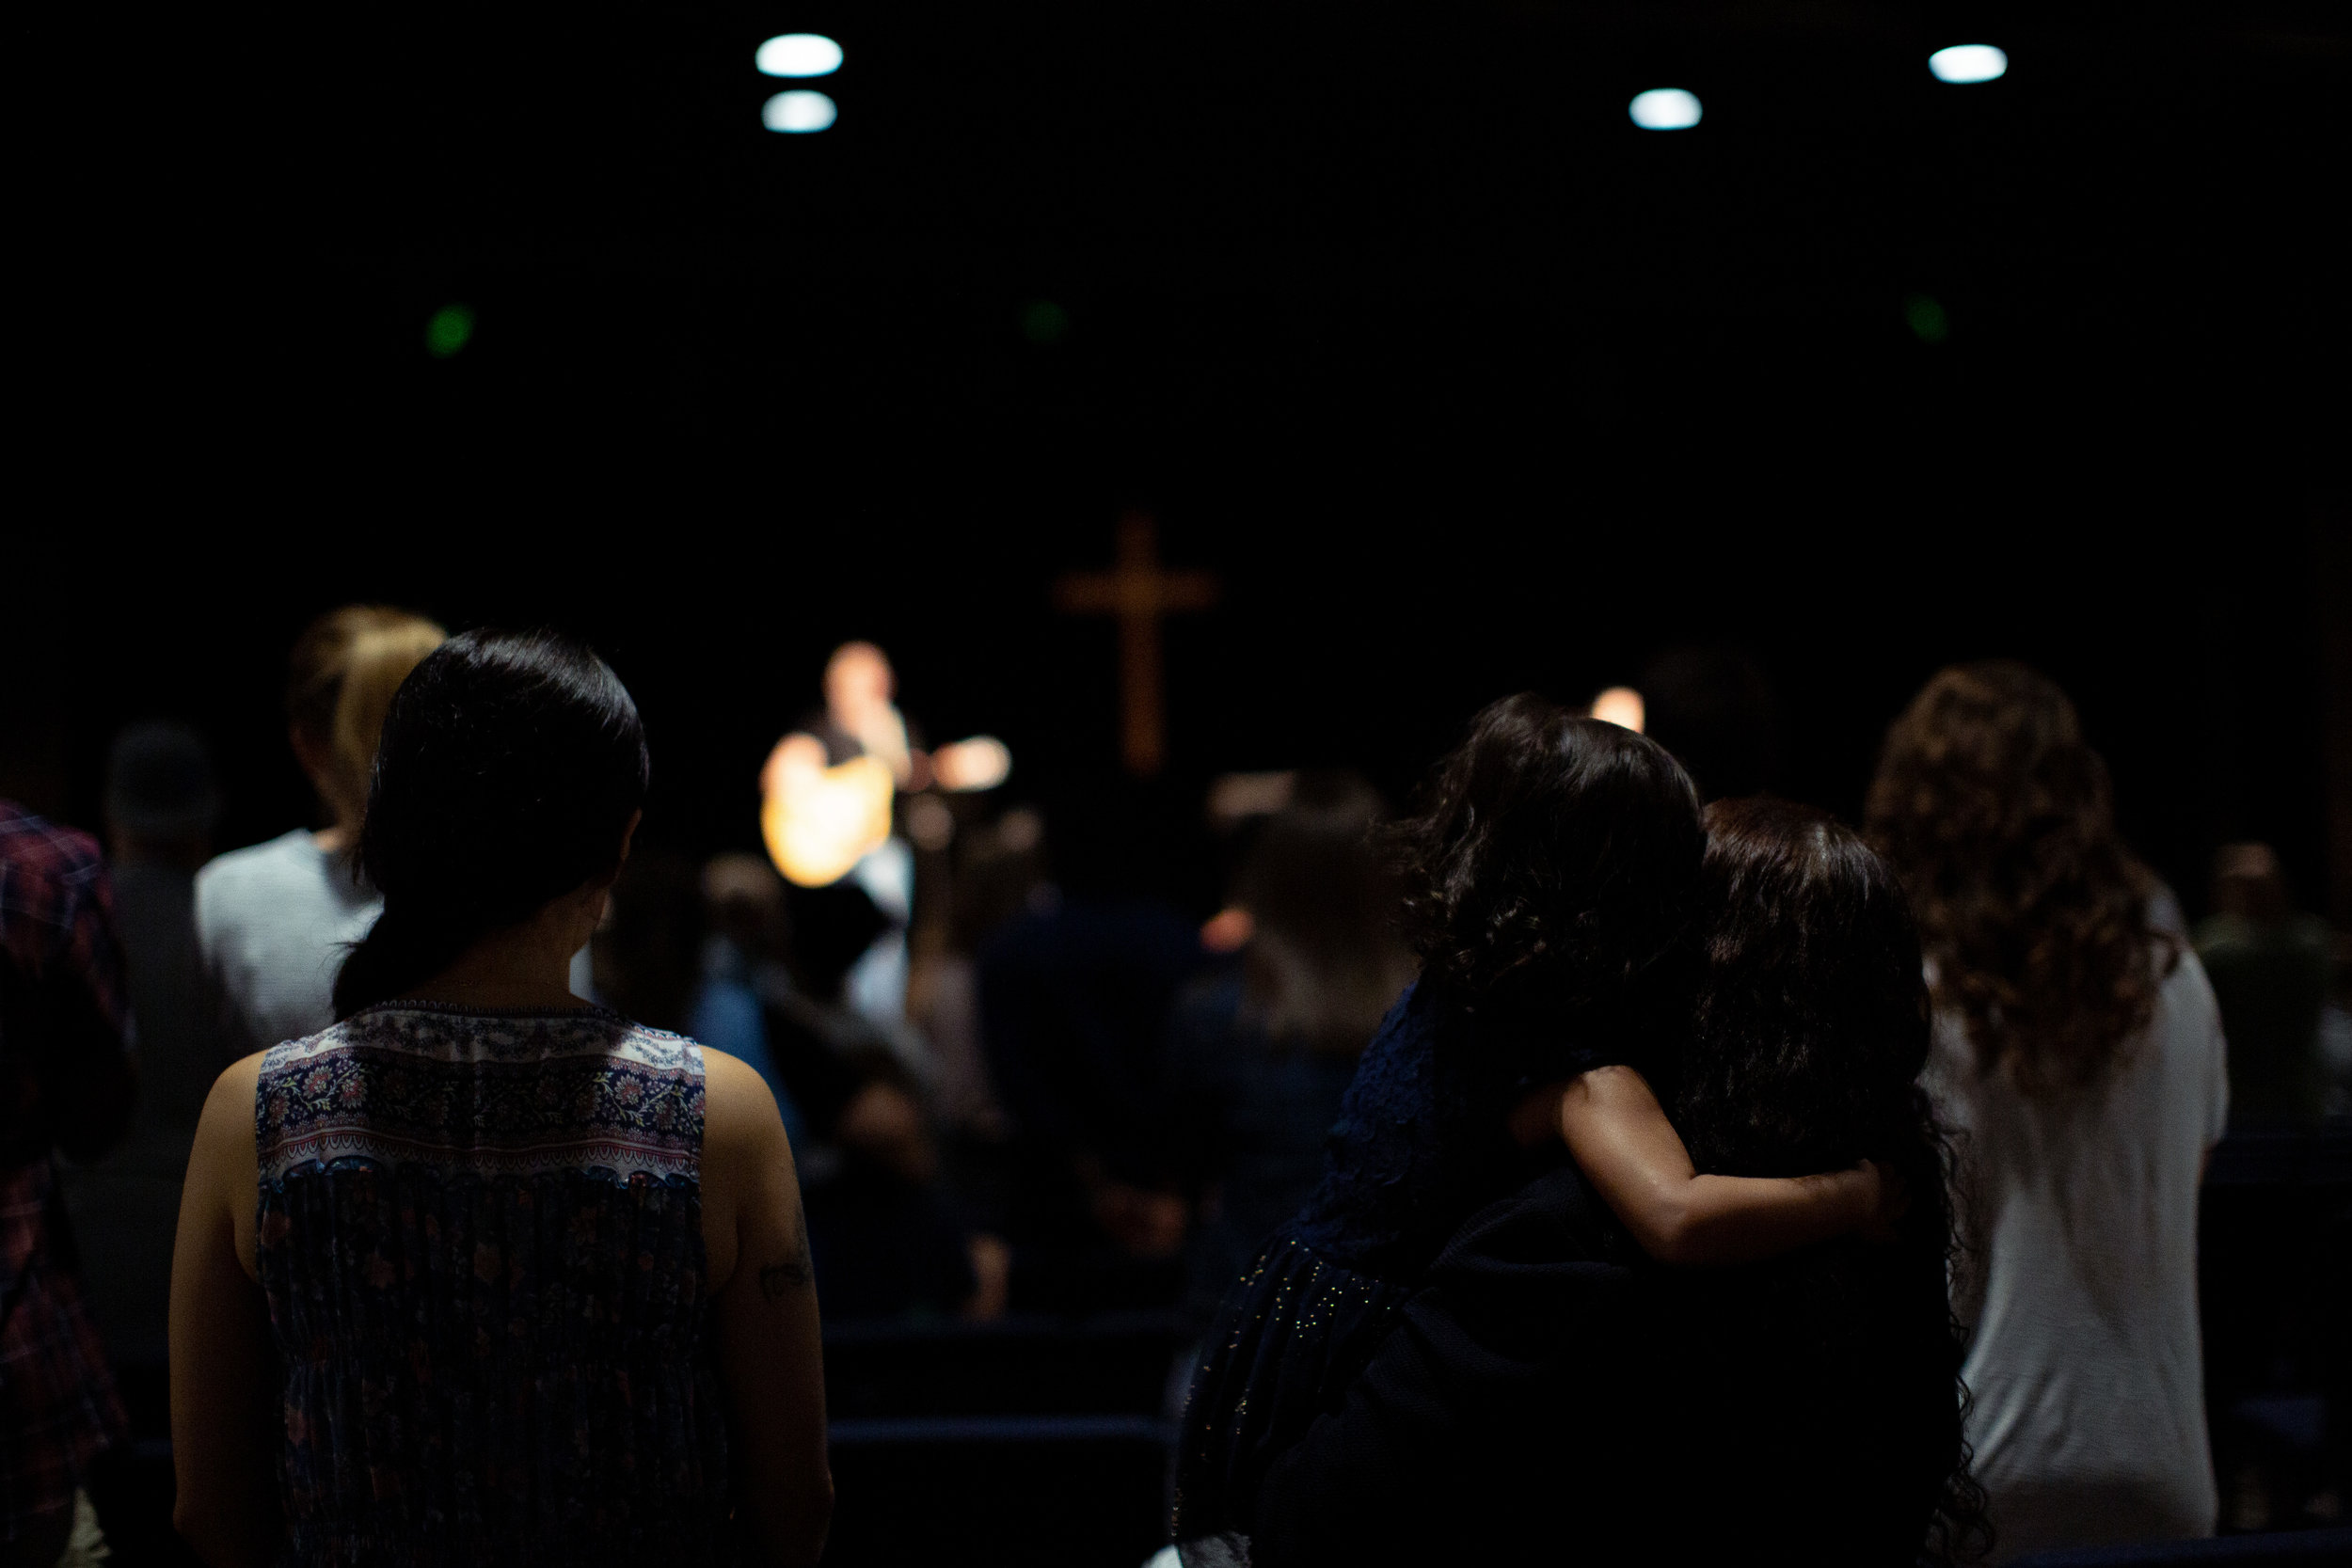 What about corporate worship? -  We believe that the participation of all children in corporate worship is a significant part of their discipleship. For this reason, we offer our kids curriculum at 9am and encourage all kids four years and older to worship with their families at the 10am service.